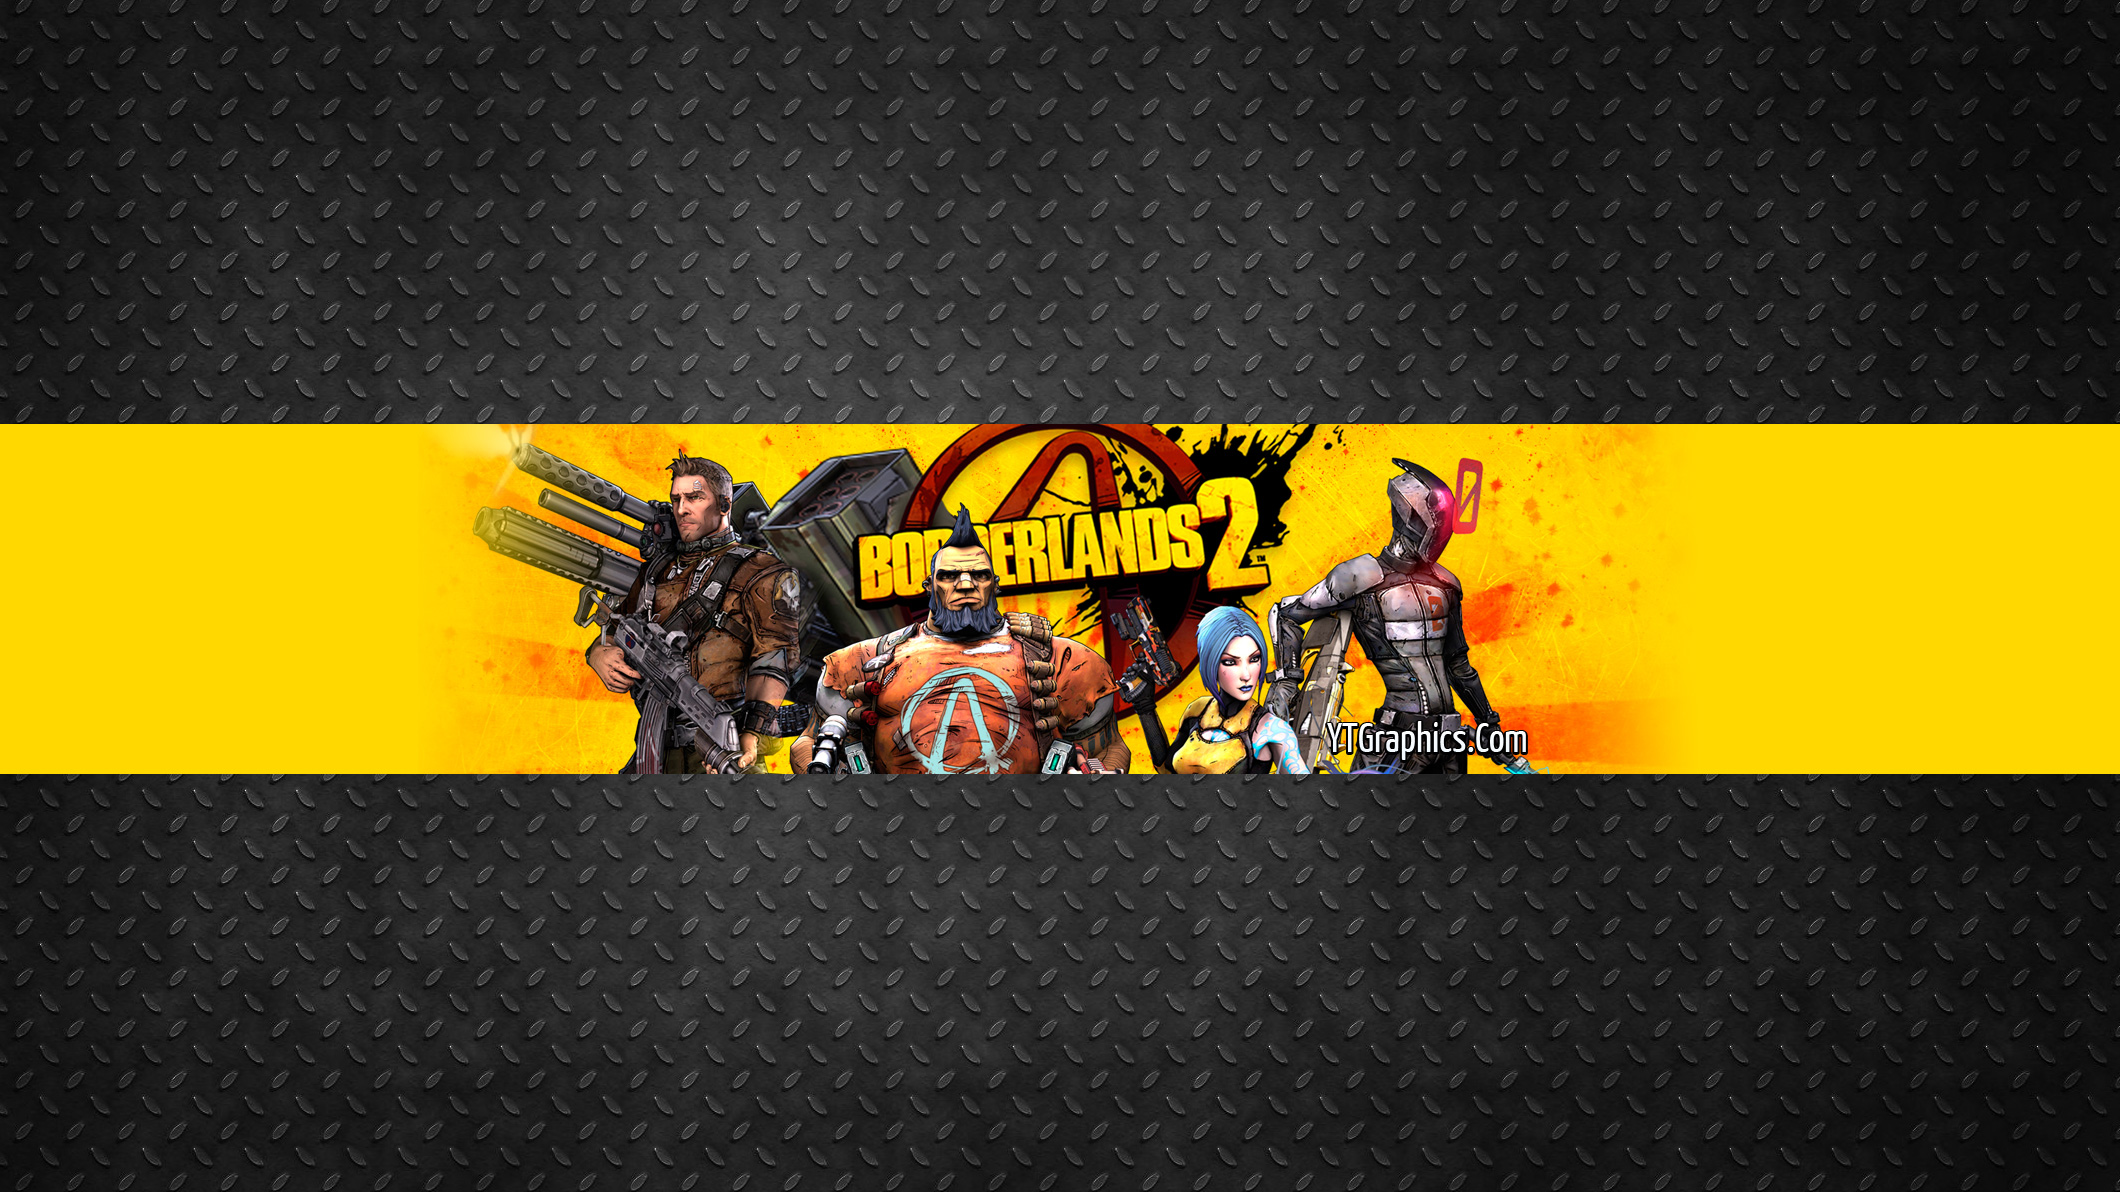 Borderlands 2 Channel Art Banner - YouTube Channel Art Banners